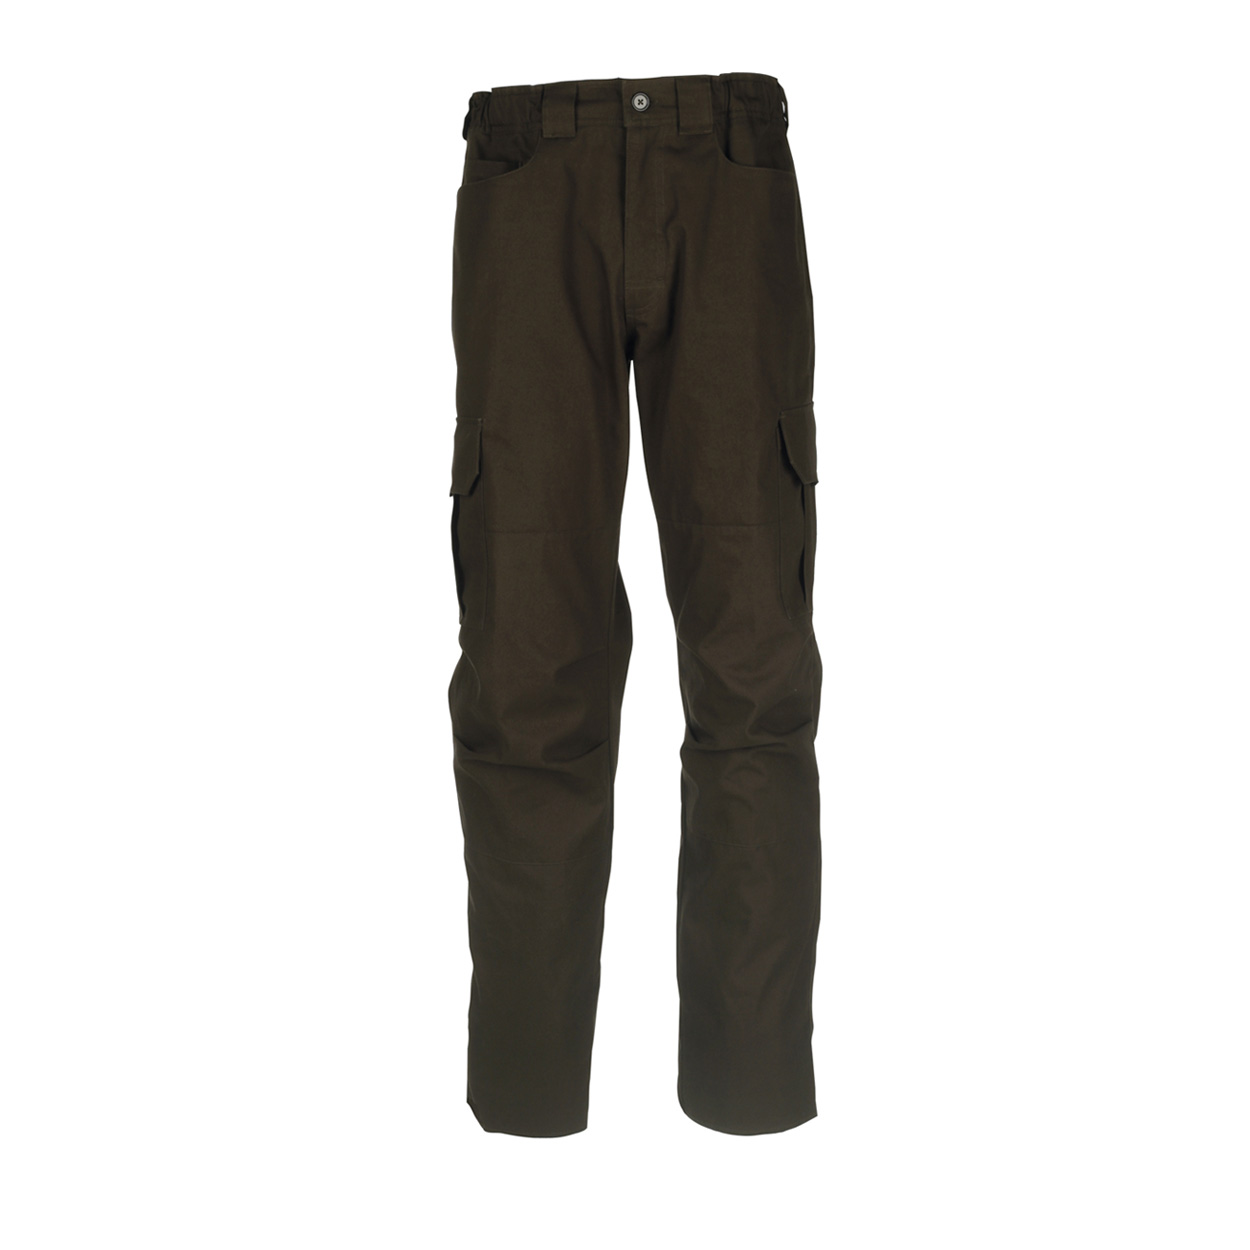 Pantalone Pula Canvas Cotton